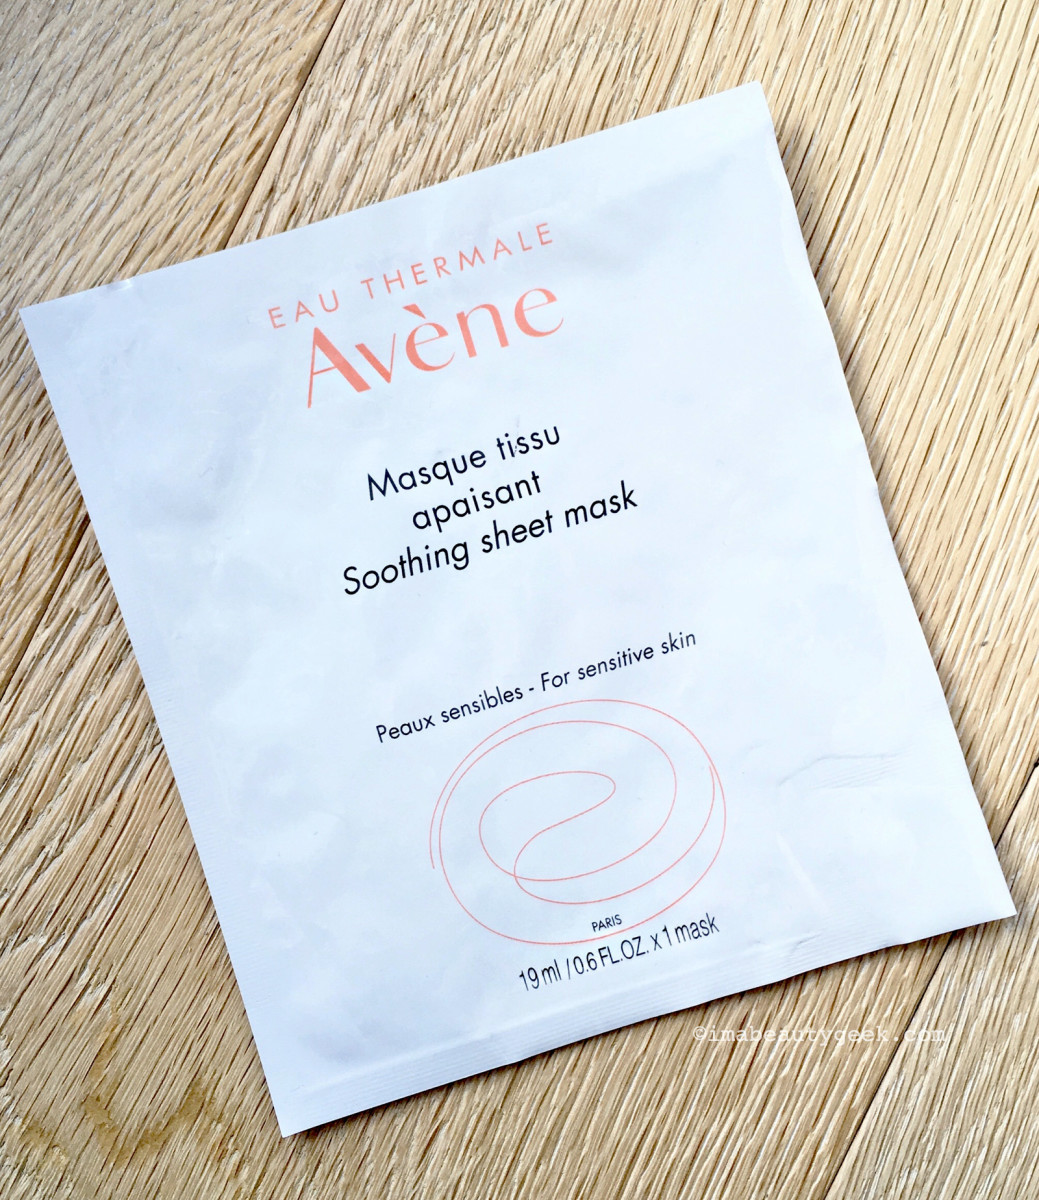 Avene Soothing Sheet Mask – a fragranced disappointment